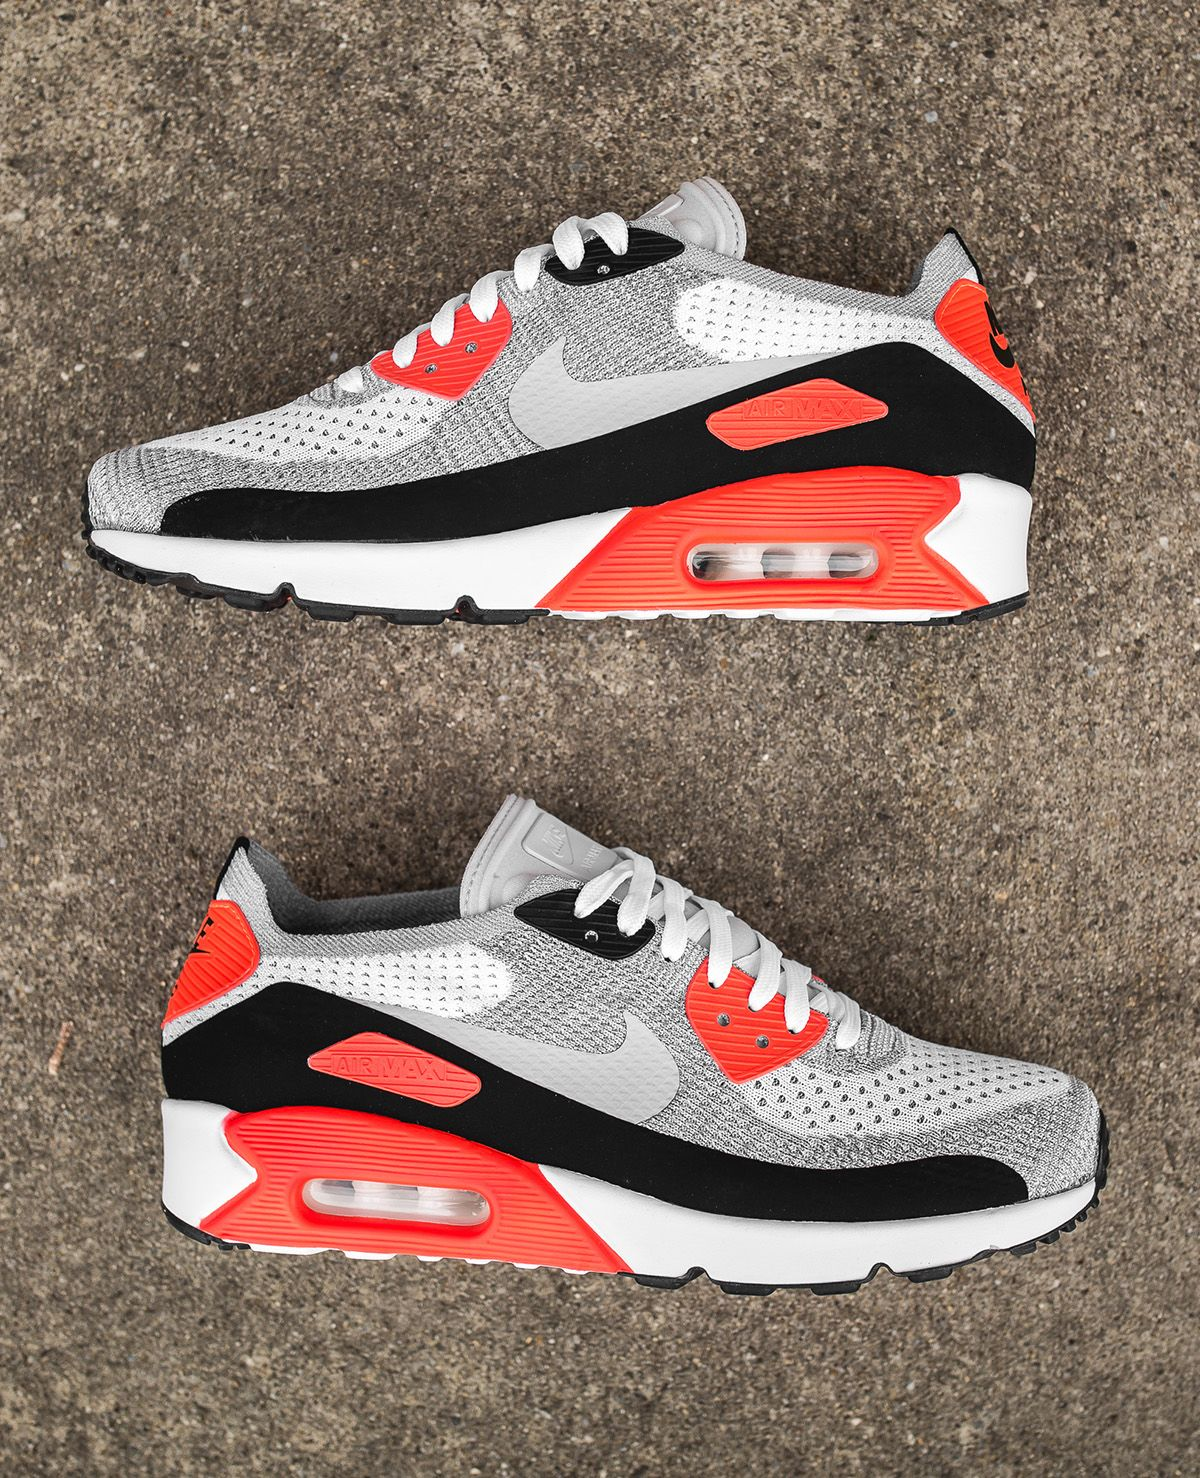 best service 9e468 b13b5 Nike Air Max 90 Ultra 2.0 Flyknit  Infrared  10 Detailed Pictures - EU Kicks